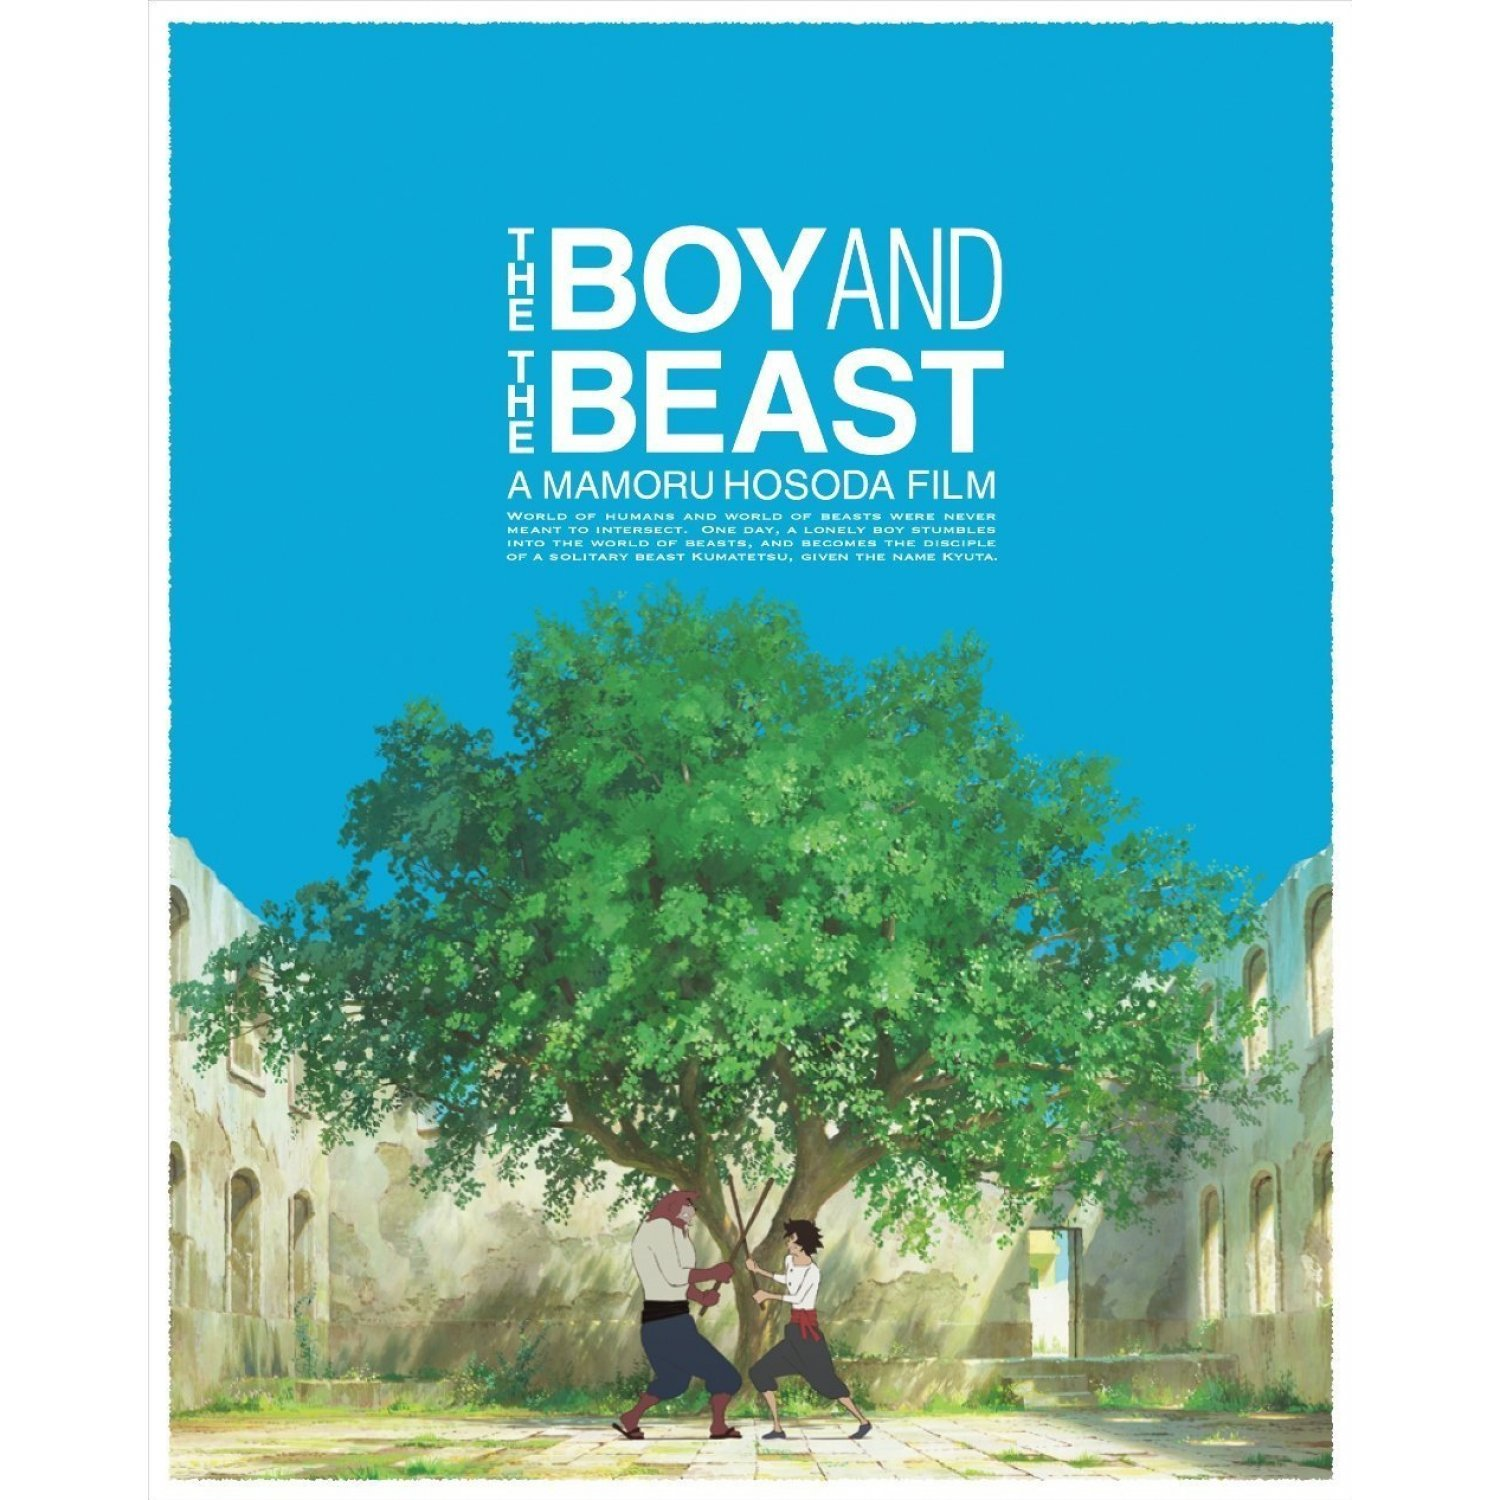 The Boy and the Beast released on DVD and limited edition Blu-ray!